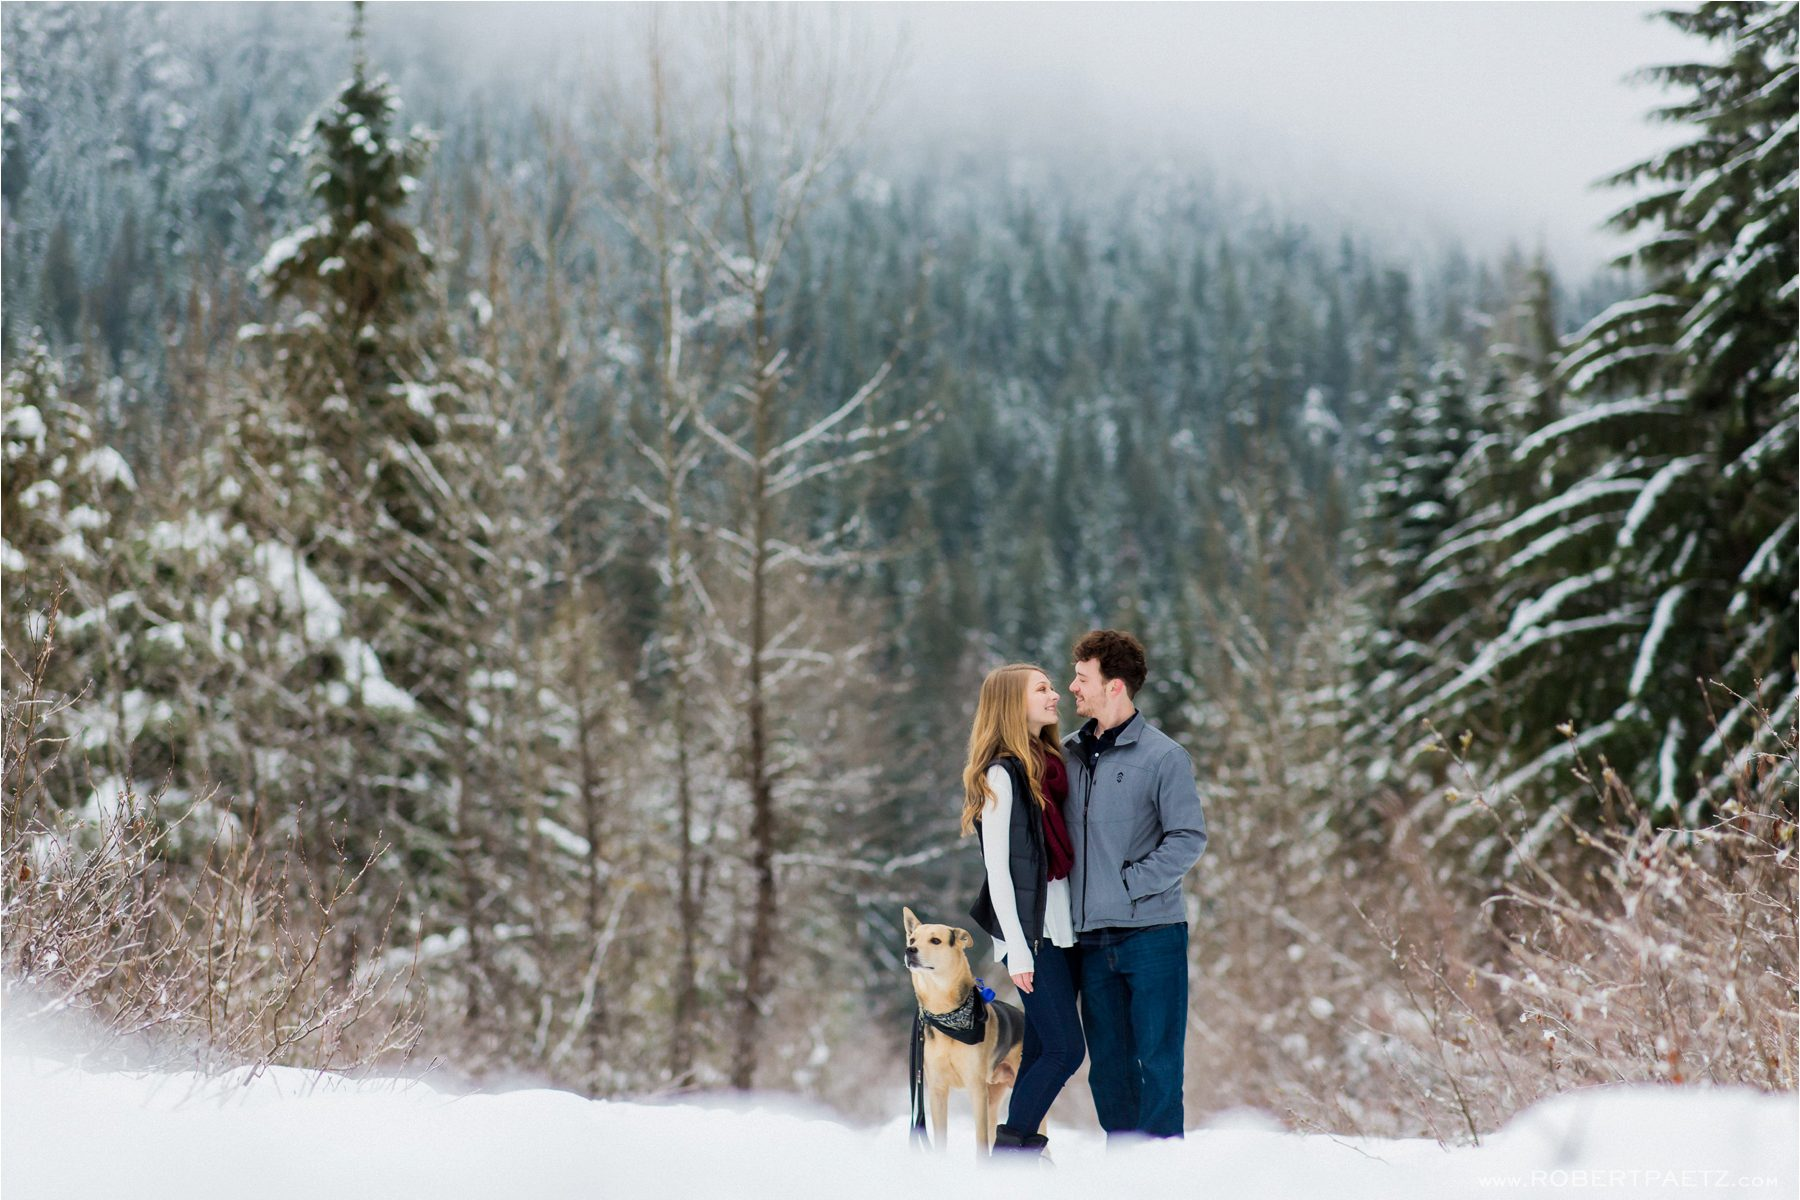 A Snoqualmie engagement photography session in the snow outside of Seattle, Washington, photographed by the destination wedding photographer Robert Paetz.